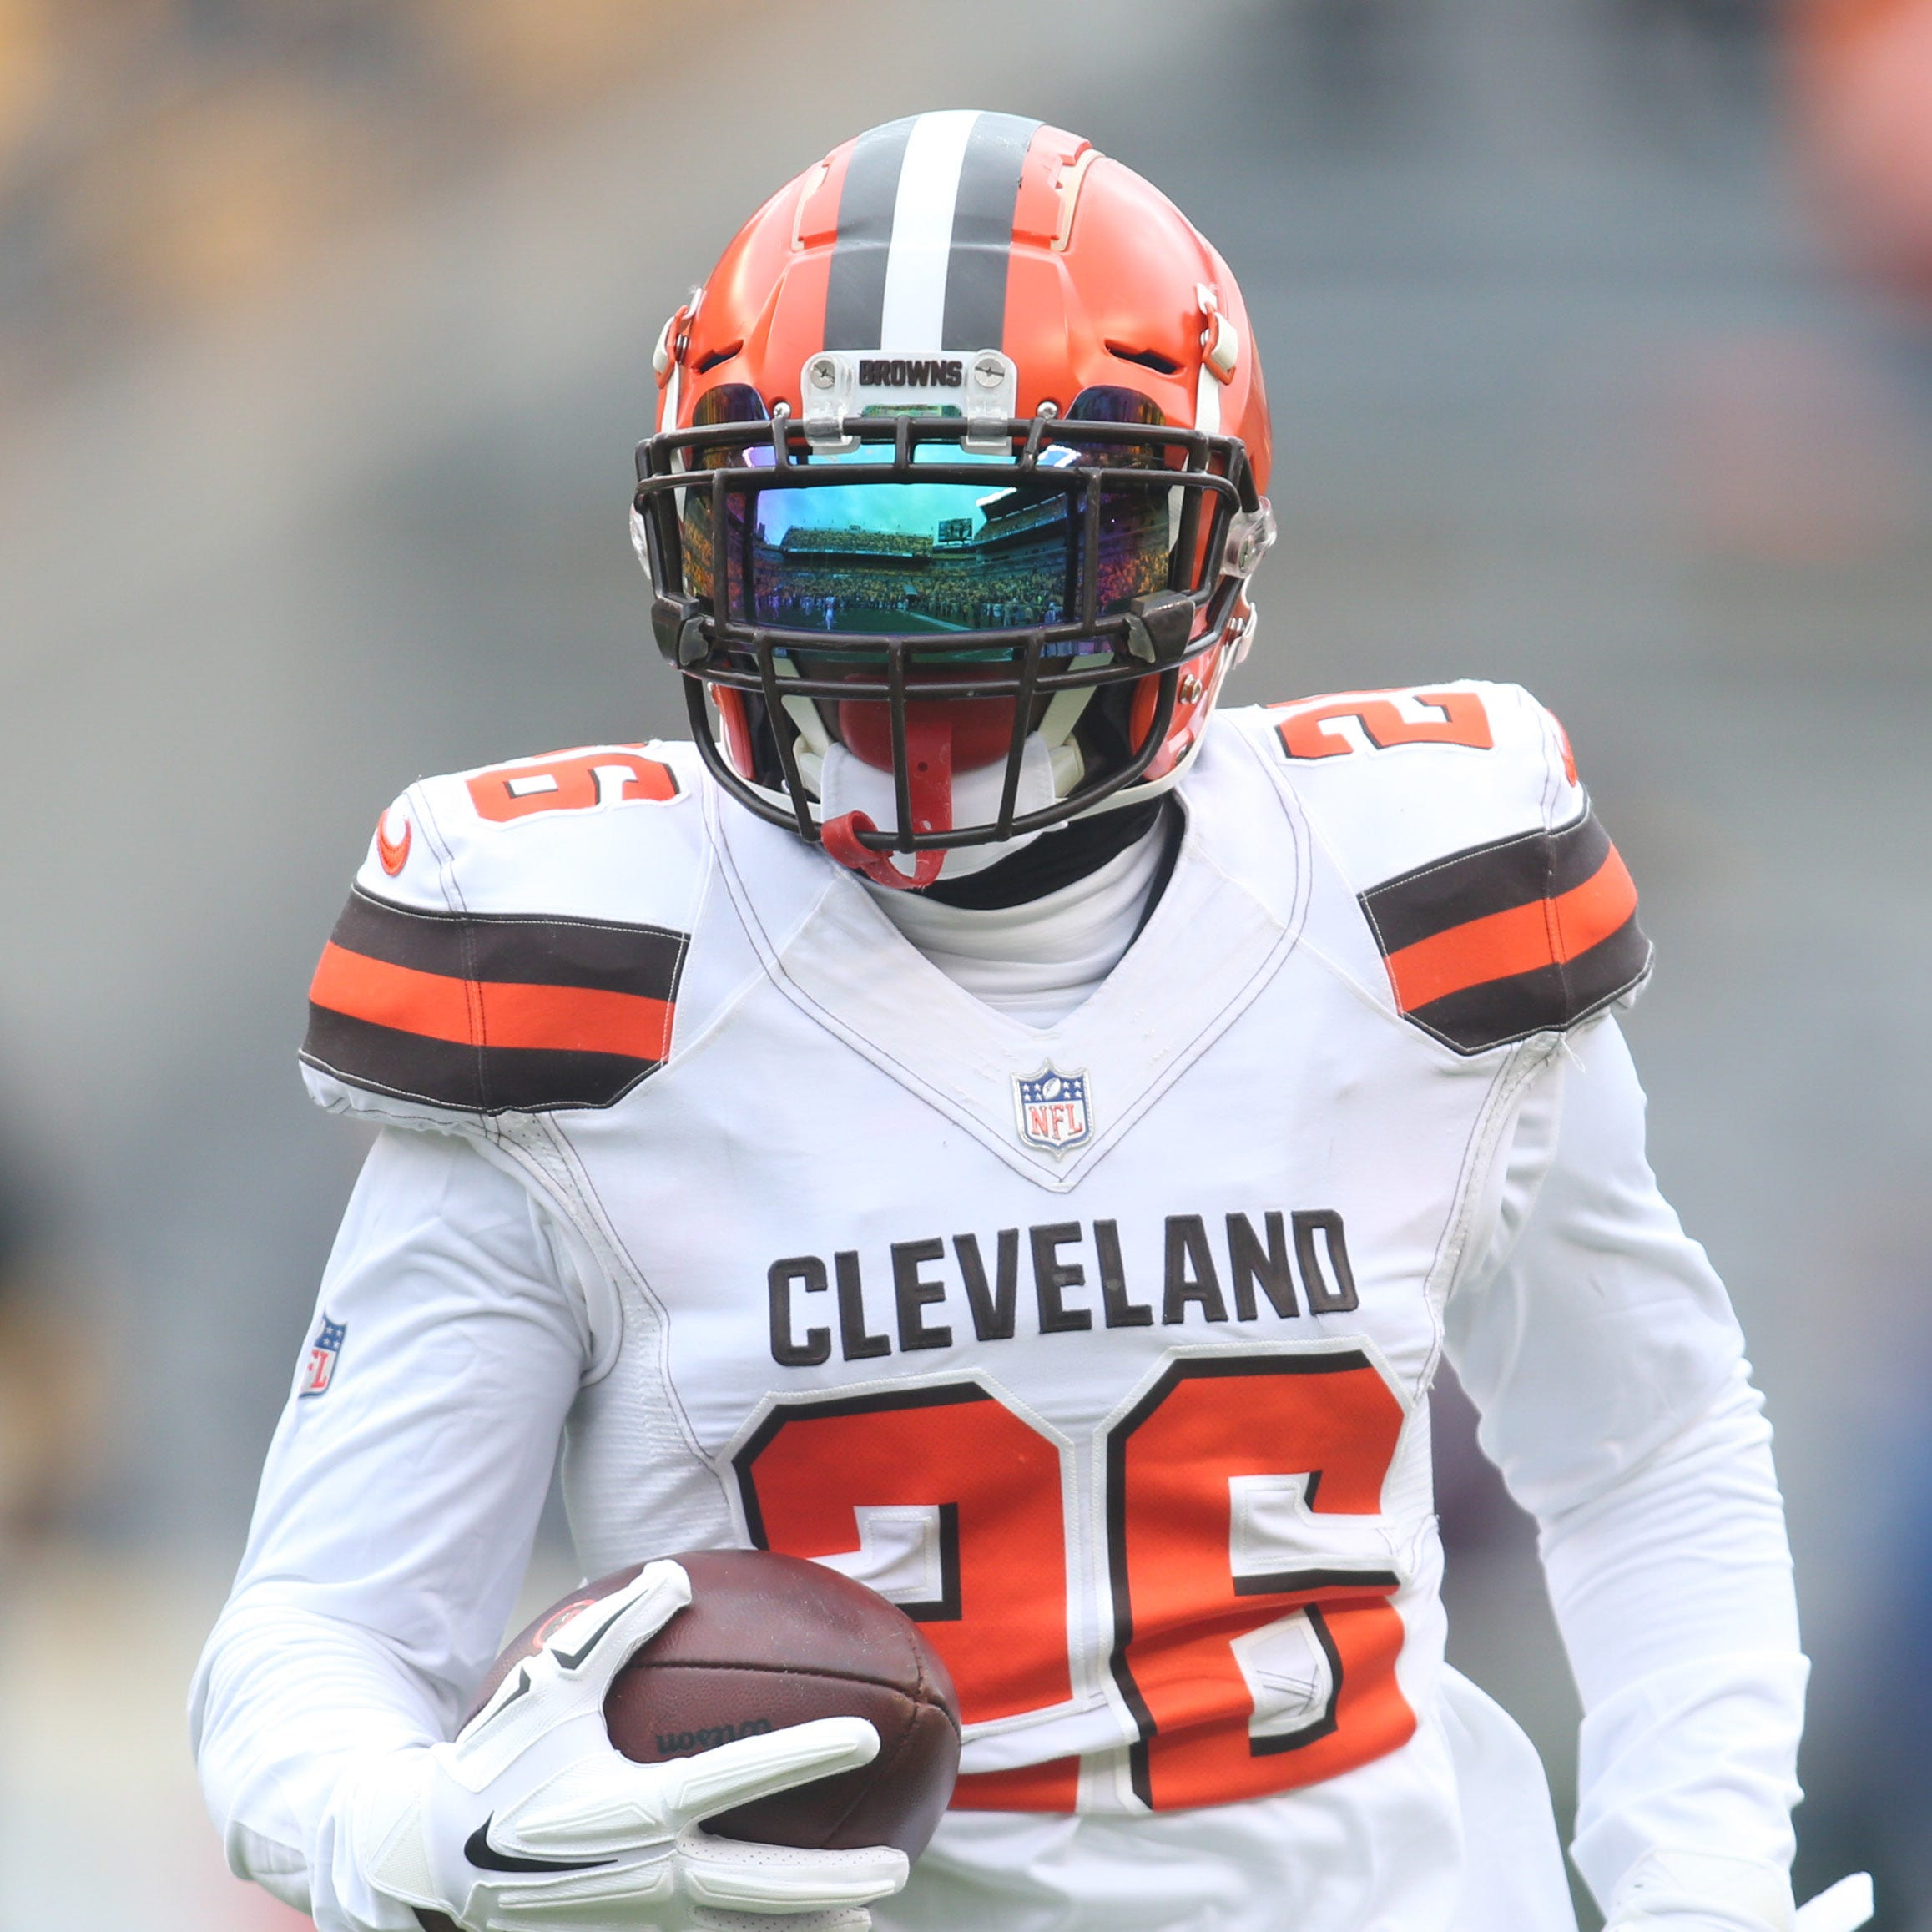 Colts add depth at safety in former Brown Derrick Kindred